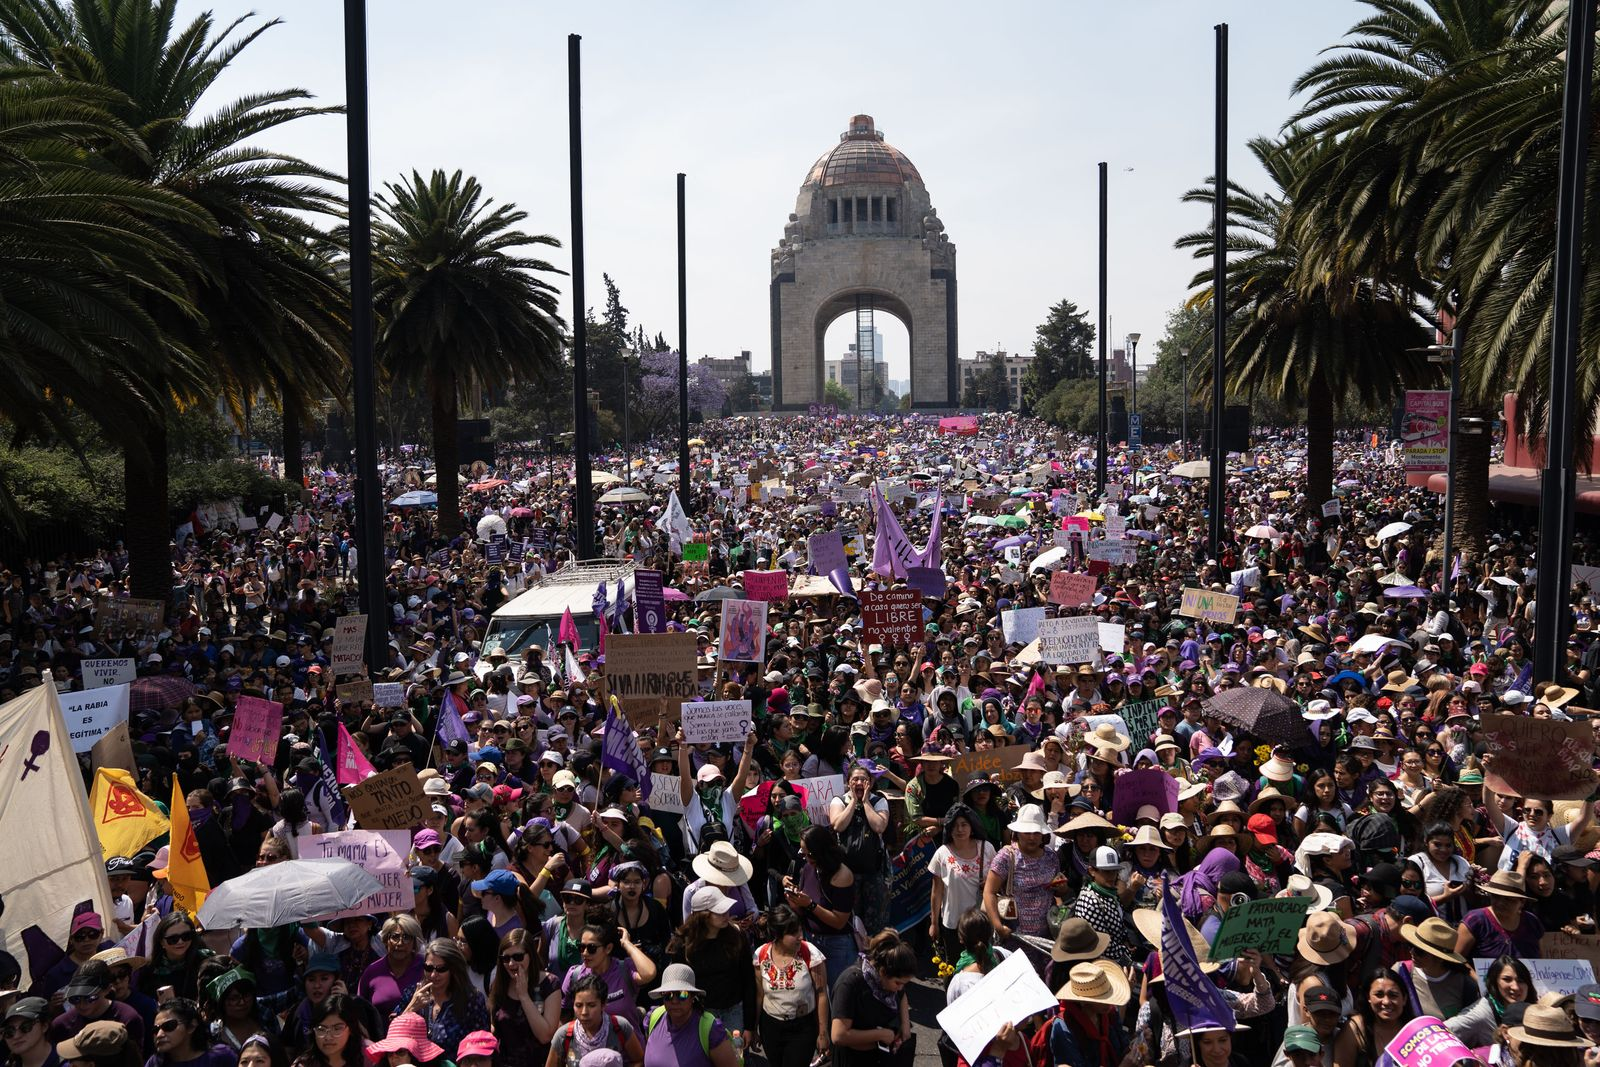 International Women's Day Demonstration In Mexico City